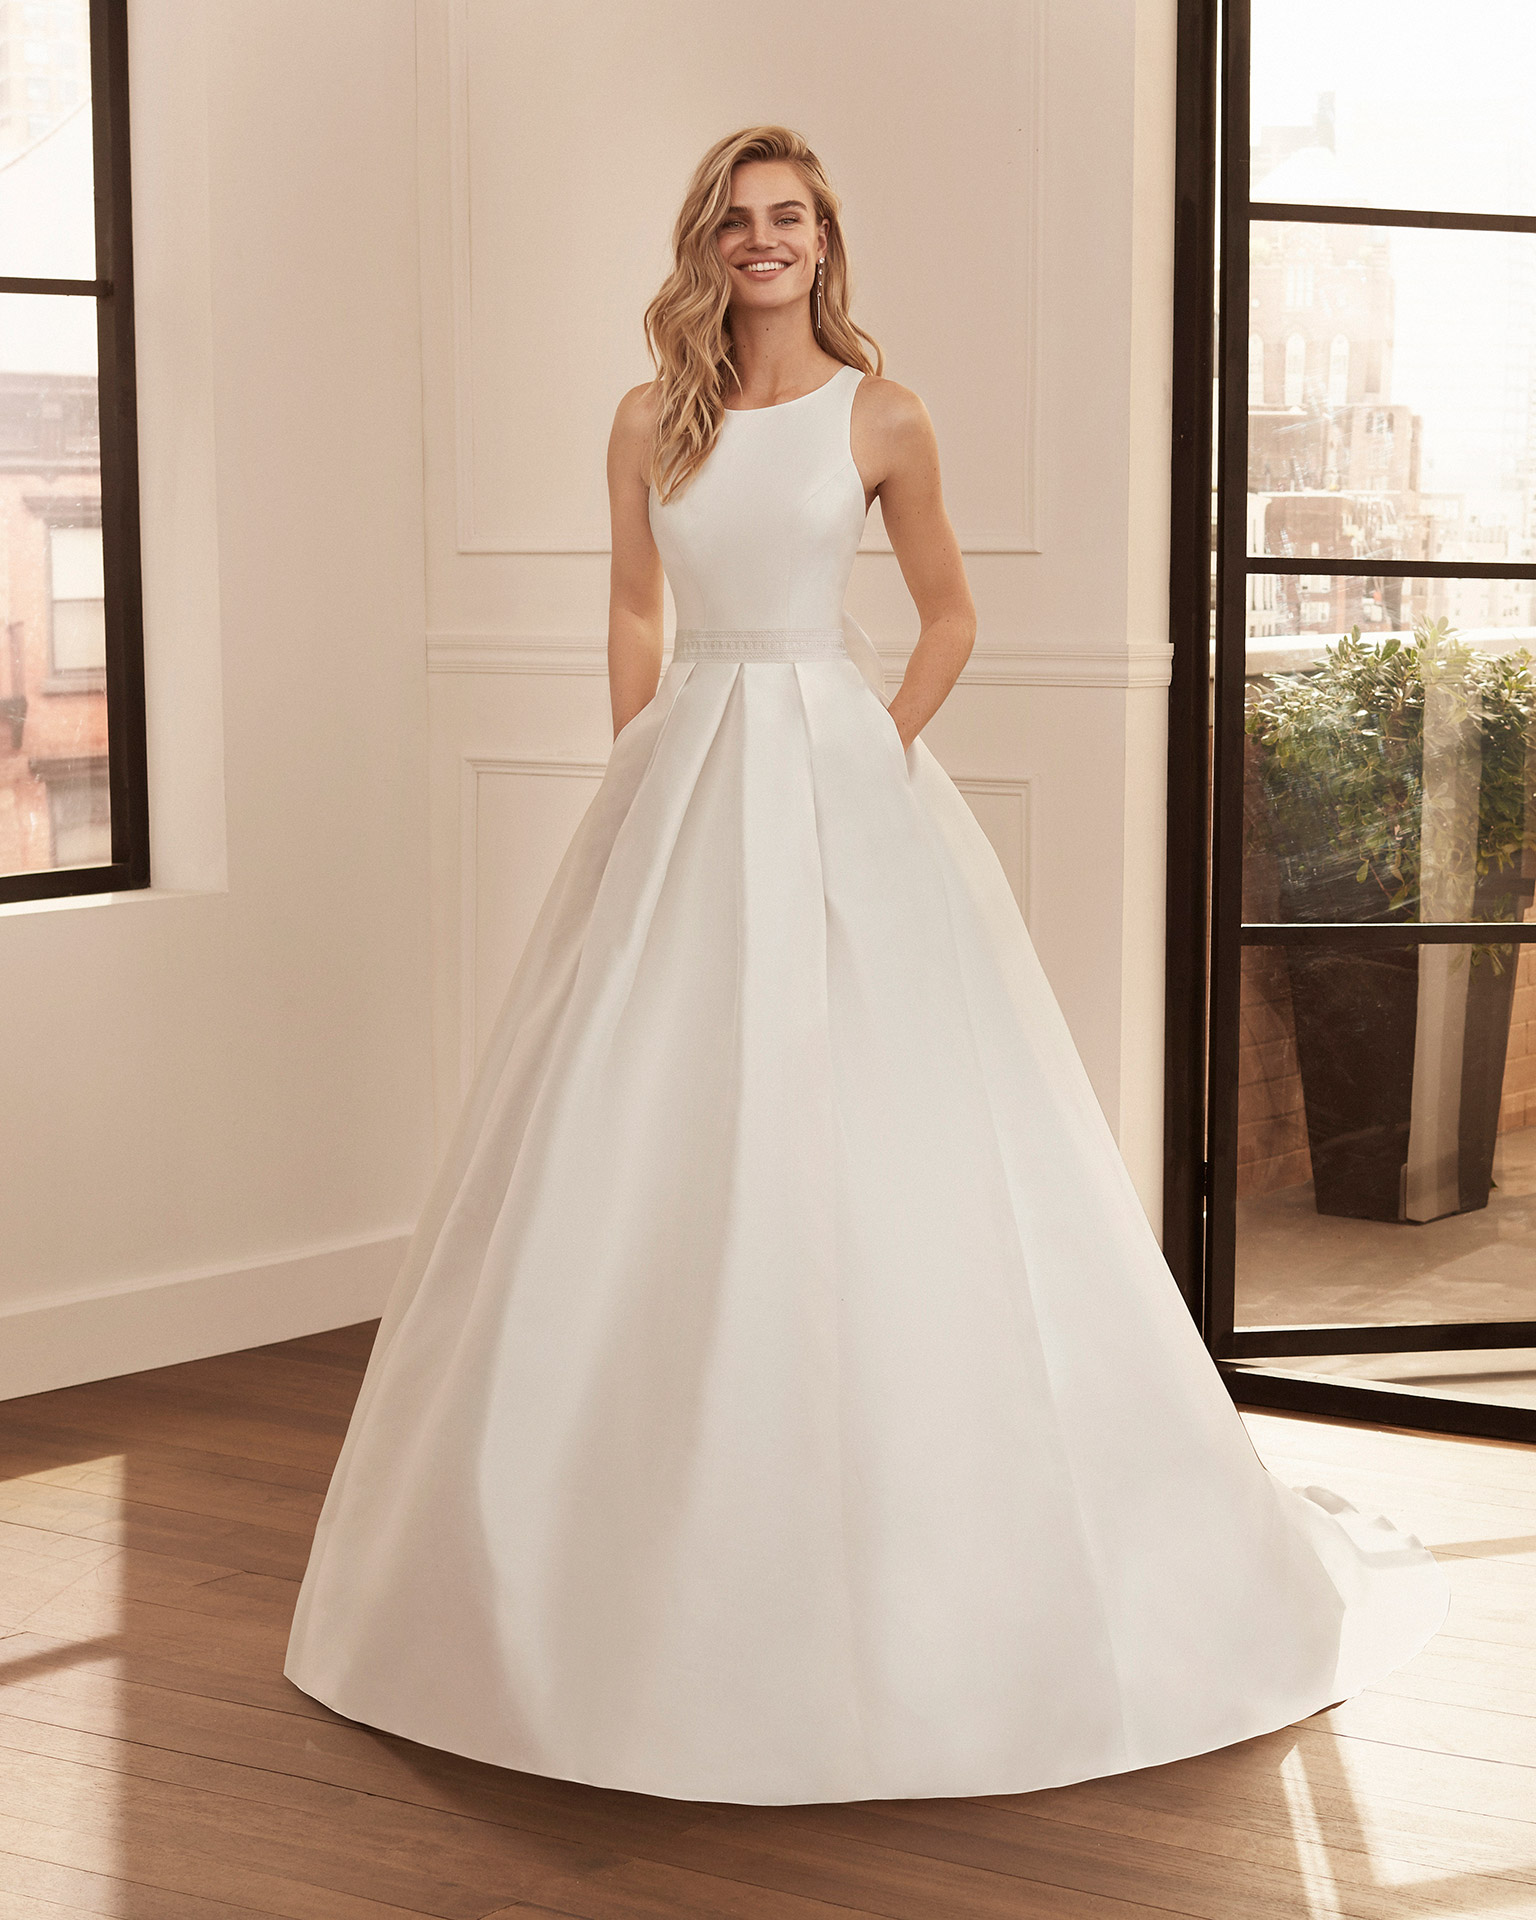 Classic wedding dress in bari with lace belt, bateau neckline and crossover back. 2020  Collection.